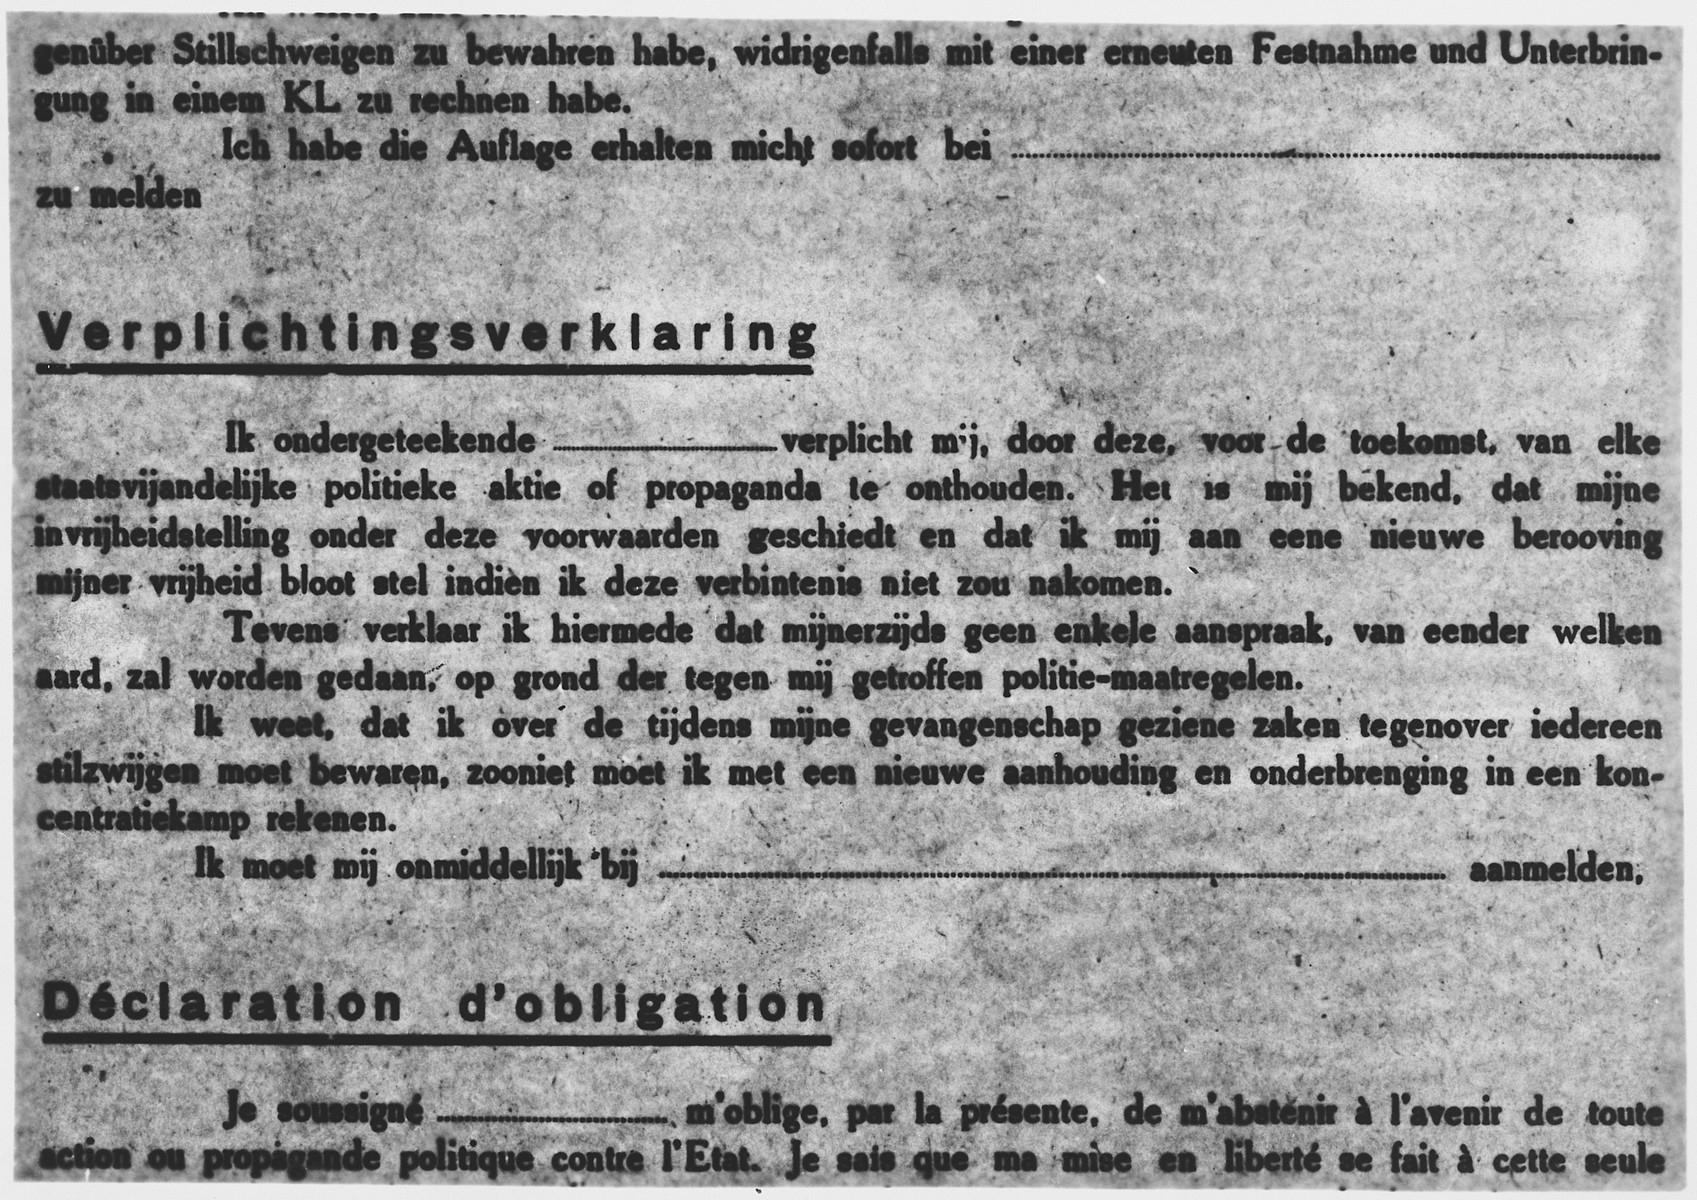 """Declaration which prisoners were made to sign on their release from a German concentration camp and kept by the police in Antwerp.  The translation reads, """"I the undersigned hereby in the future refrain from every political or propagandistic activity.  I understand that my release is governed by these conditions and that I am liable to a fresh forfeiture of my freedom if I do not carry out this undertaking.  I also declare that I shall make no claim in respect of any measures which have been taken against me by the police.  I am aware that I must say nothing about anything which I have seen during my time of imprisonment; otherwise I shall be rearrested and detained in a concentration camp."""""""